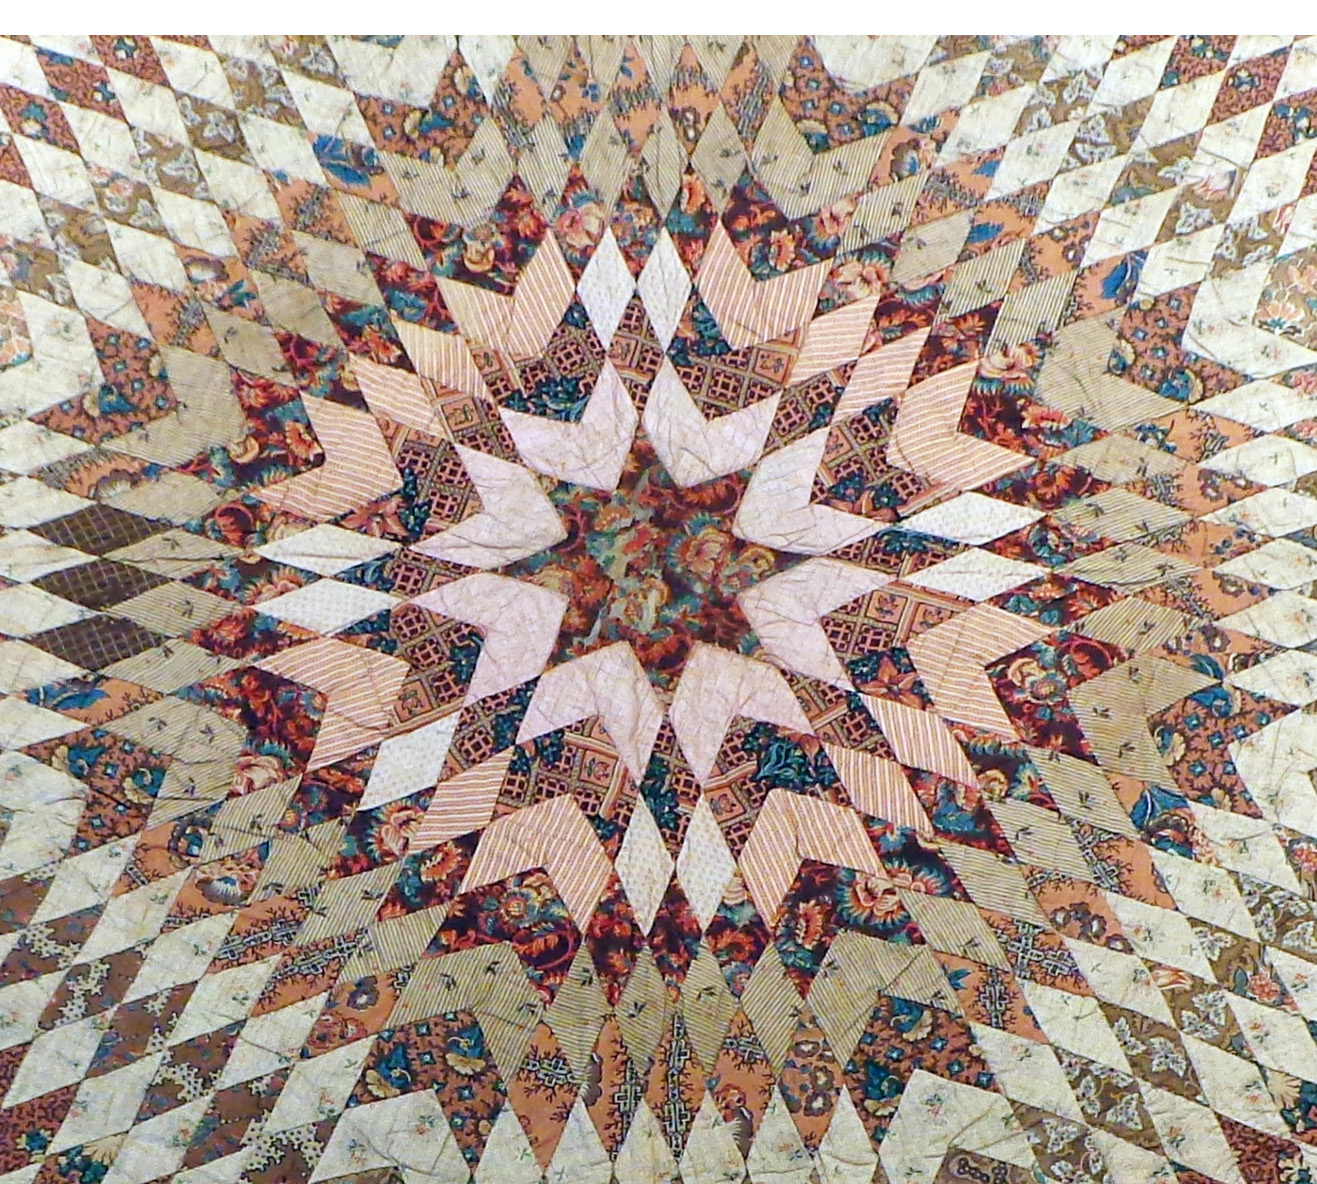 Quilt_second quarter 19th century_detail.jpg